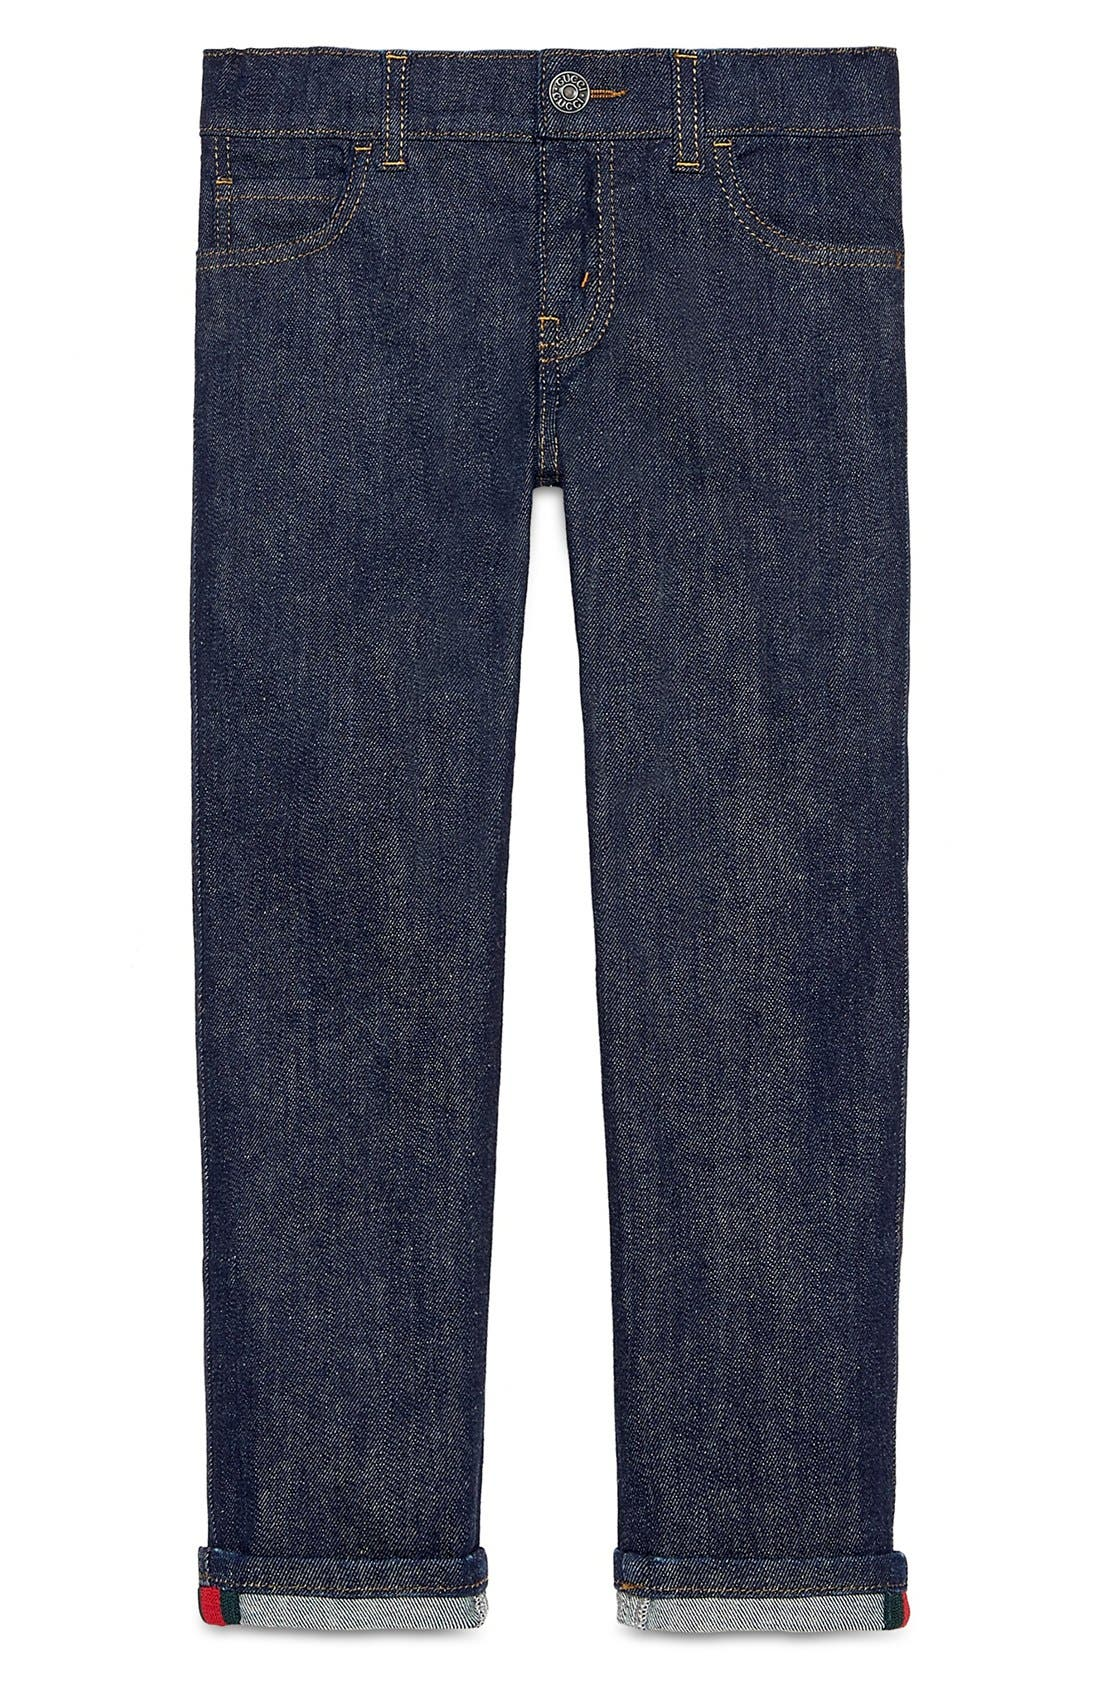 Gucci Straight Leg Jeans (Little Boys & Big Boys)